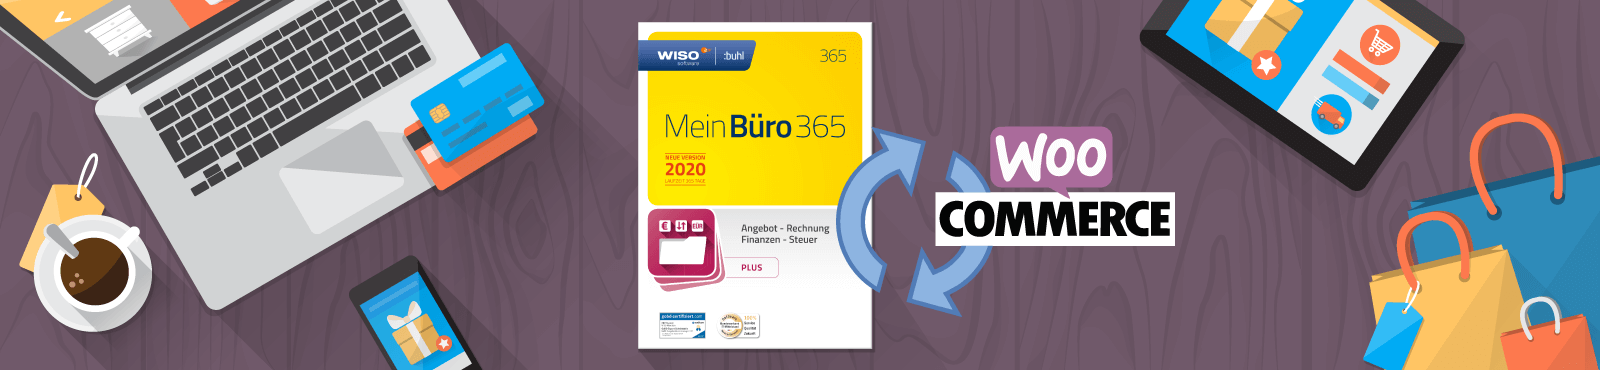 "<span class=""text-thin"">Mein</span>Büro-Webselling: Komfortable WooCommerce-Connection"